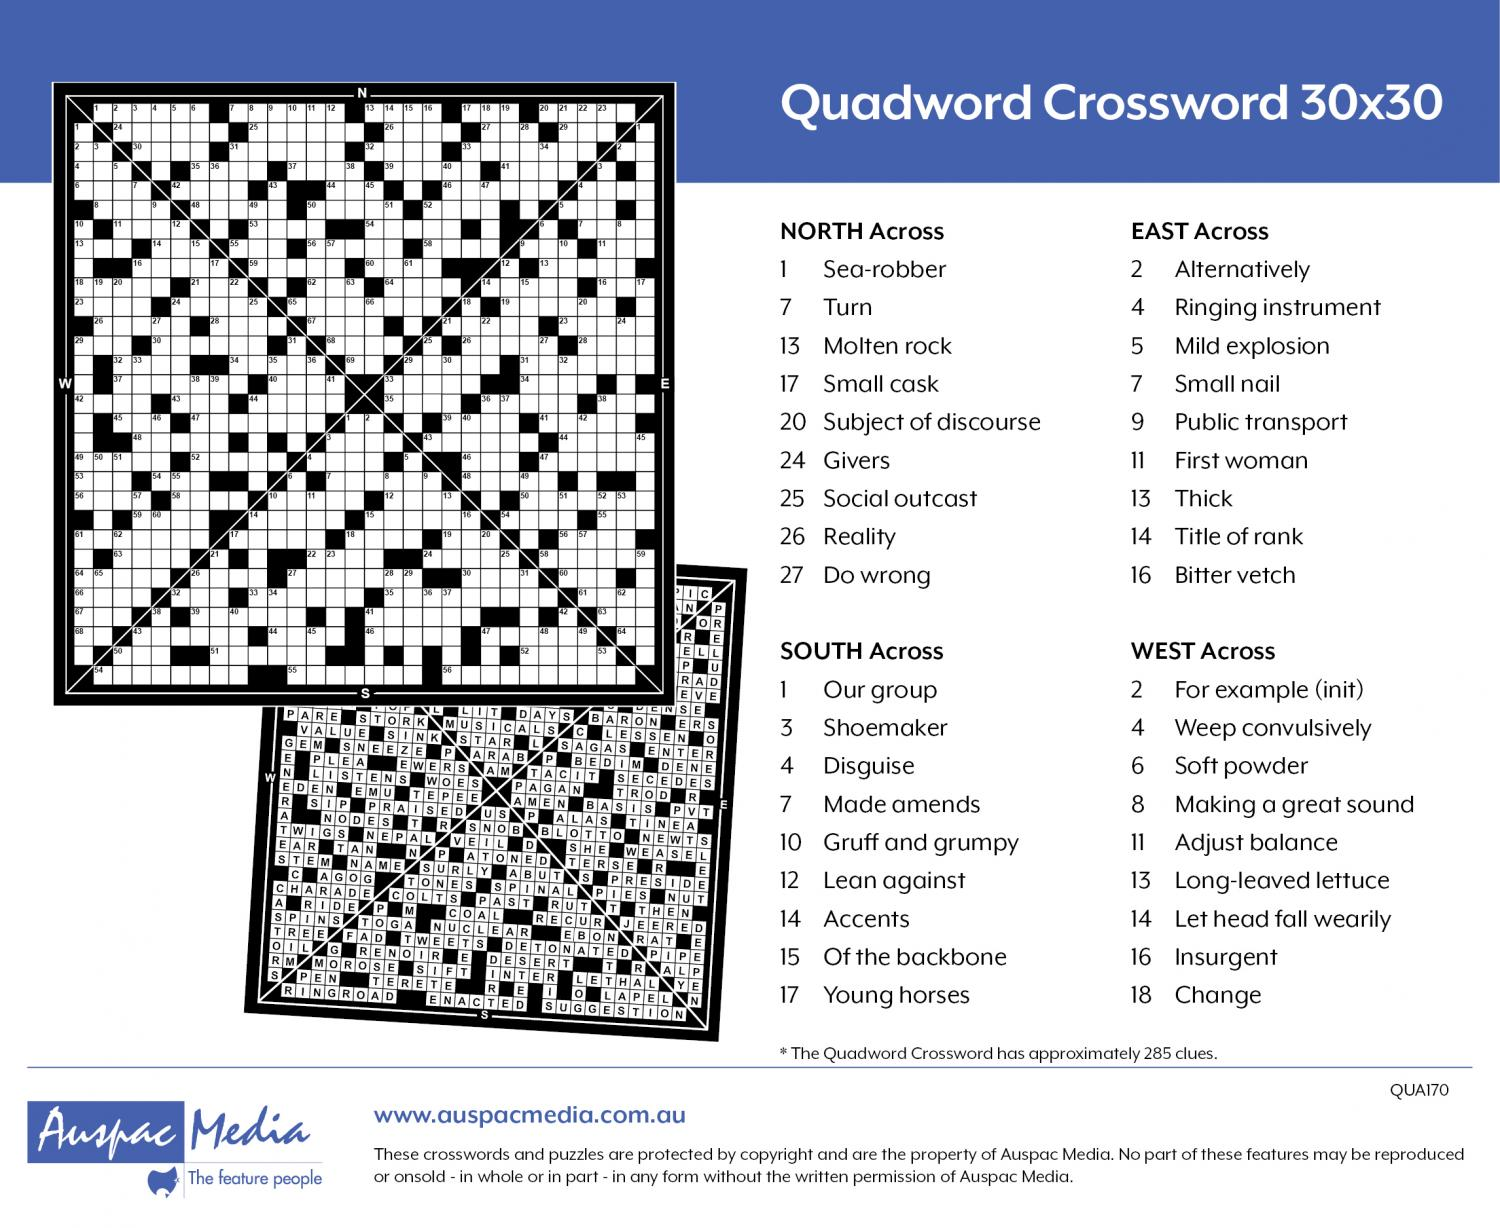 Thumbnail for Quadword Crossword 30x30